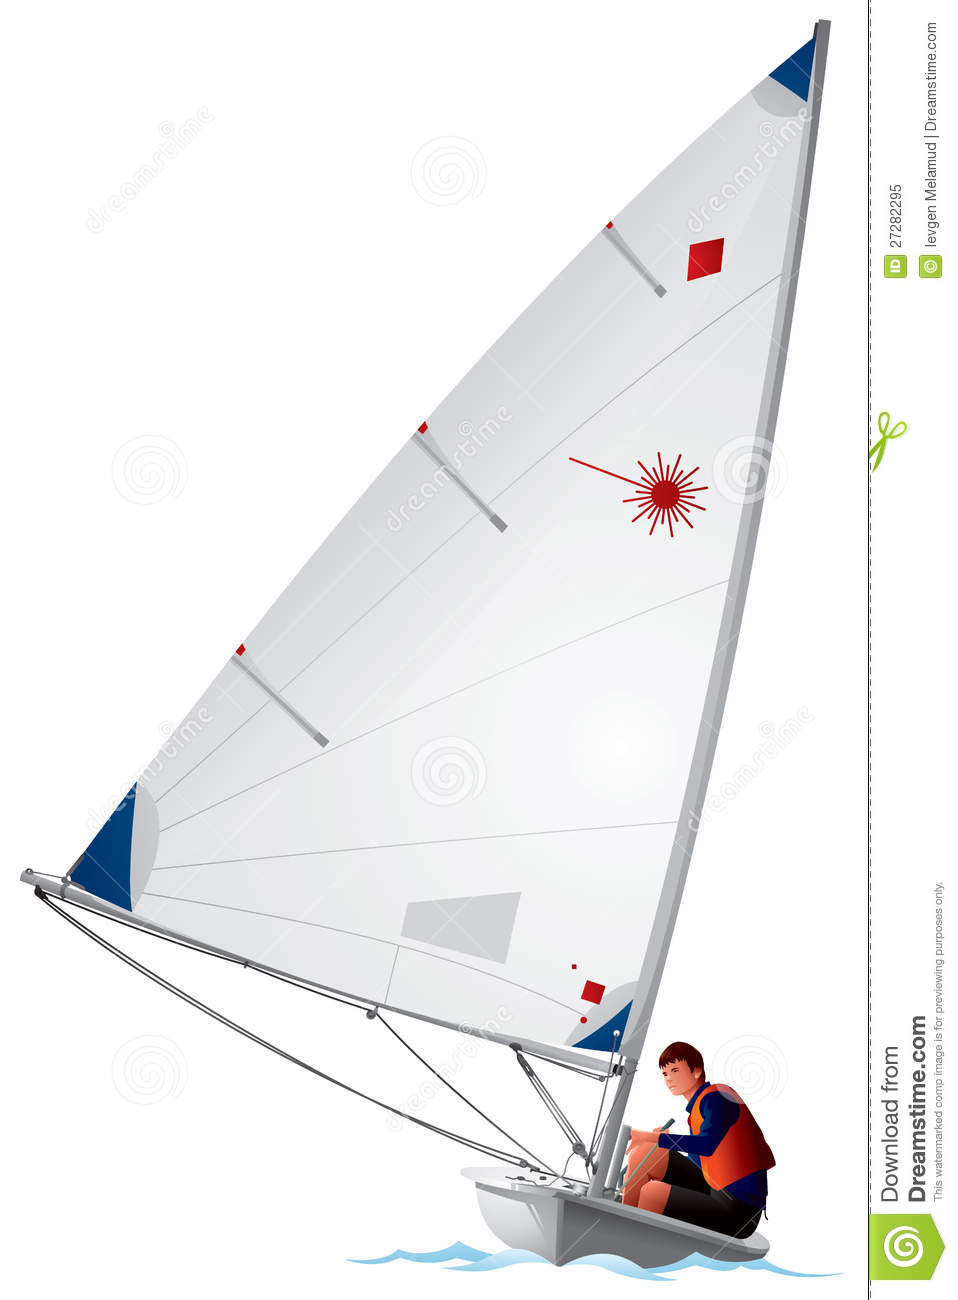 Laser Class sailboat vector illustration, sailing sport dinghy and ...